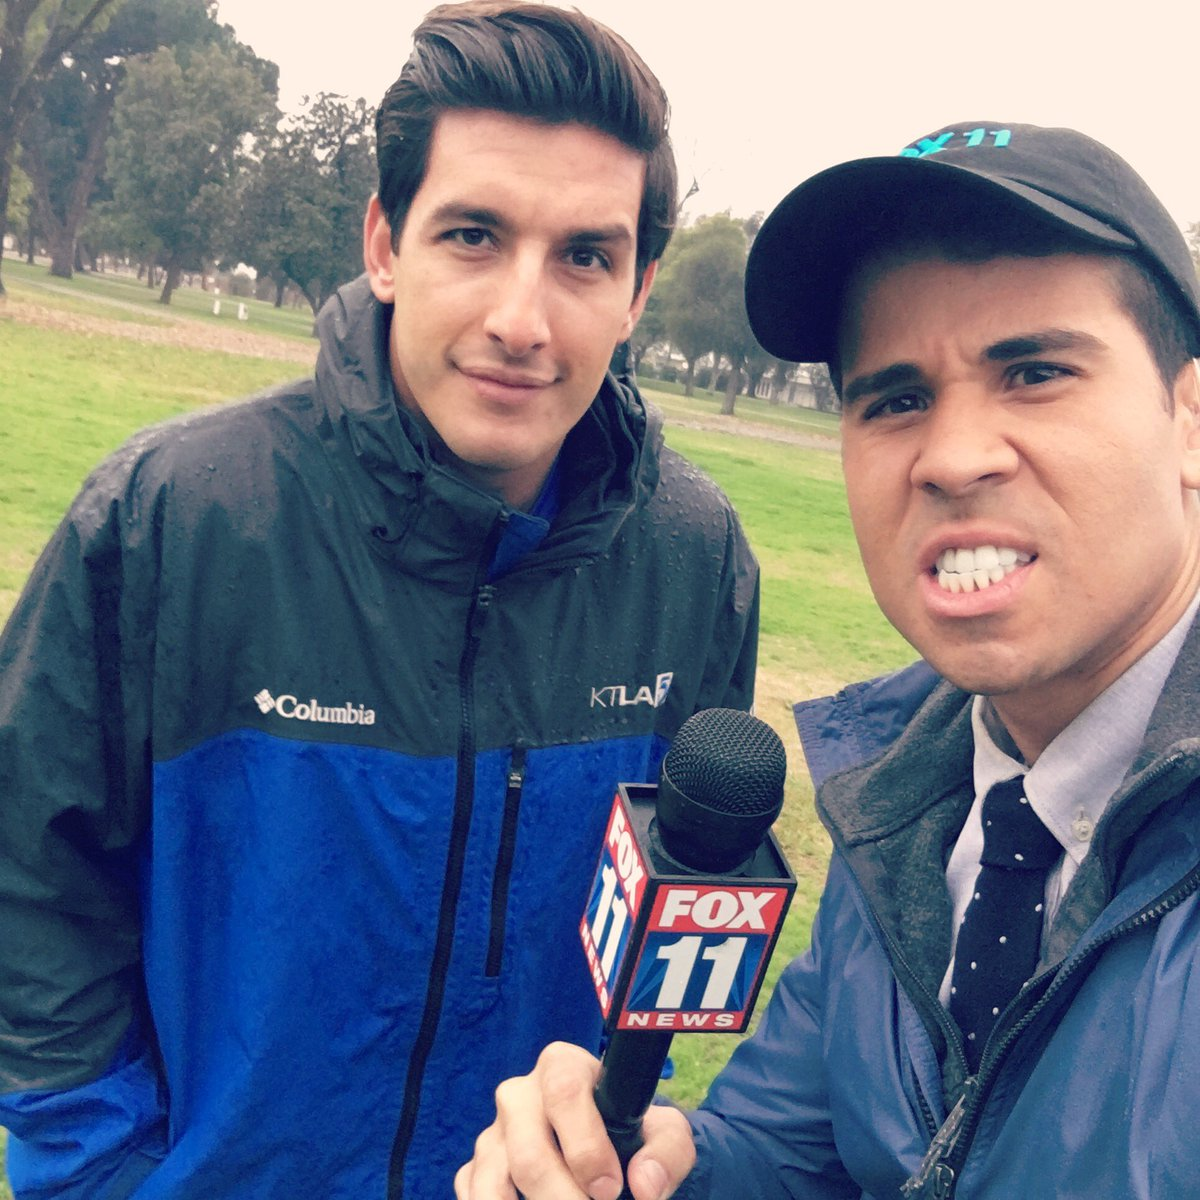 When the rain has NO affect on the competition&#39;s hair!  #LARain #reporters #competition #KTLA #FOXLA<br>http://pic.twitter.com/qJnbMO5atU